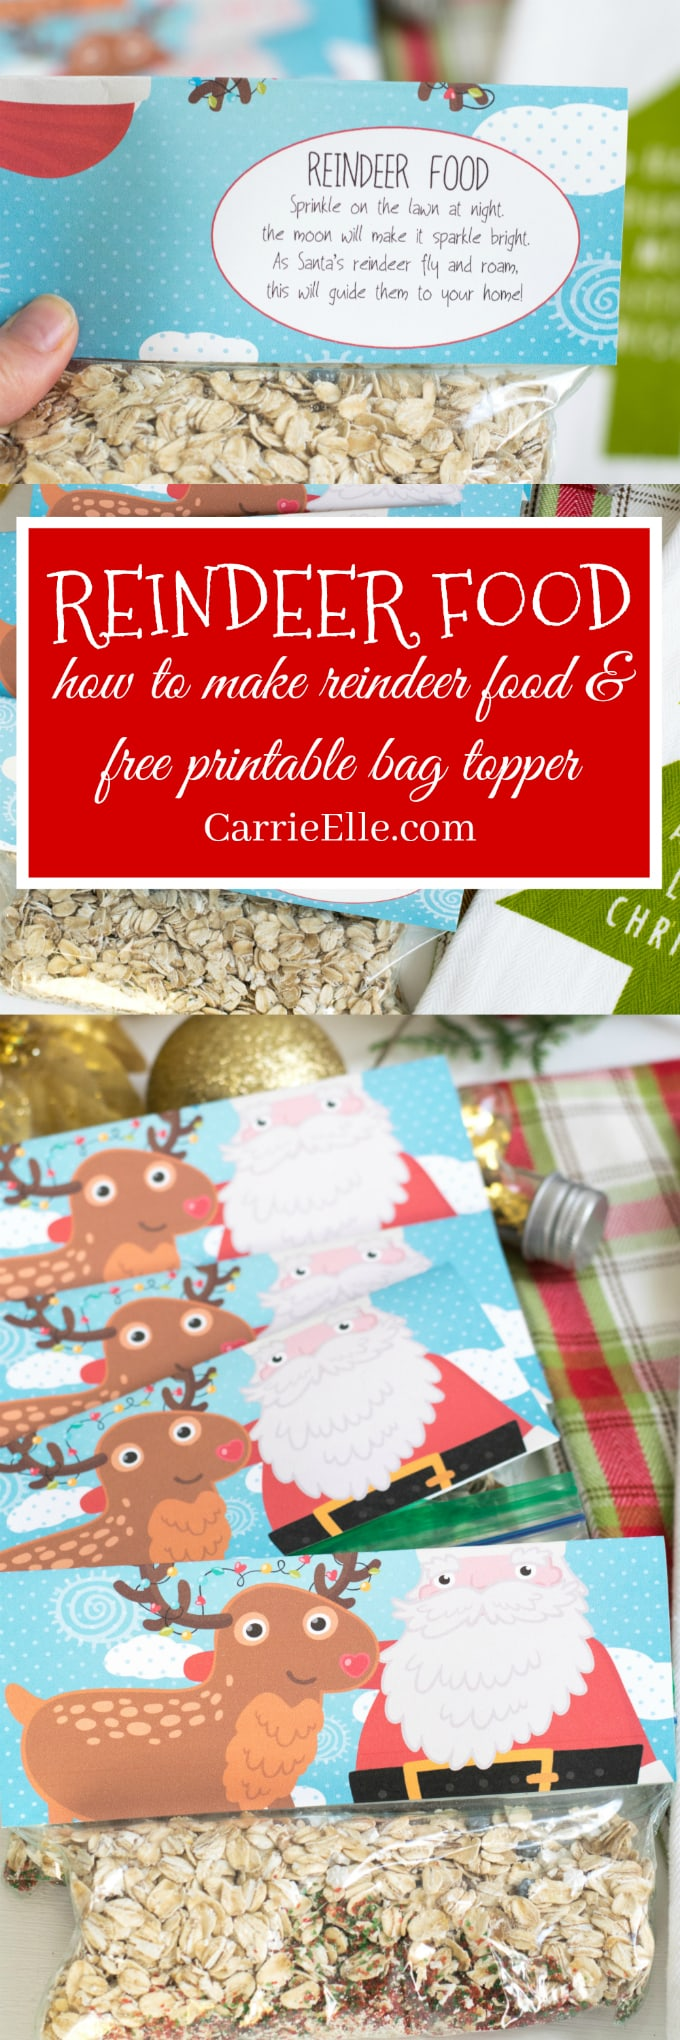 image regarding Reindeer Food Poem Printable referred to as How towards Create Reindeer Foods (No cost Printable Reindeer Foods Poem